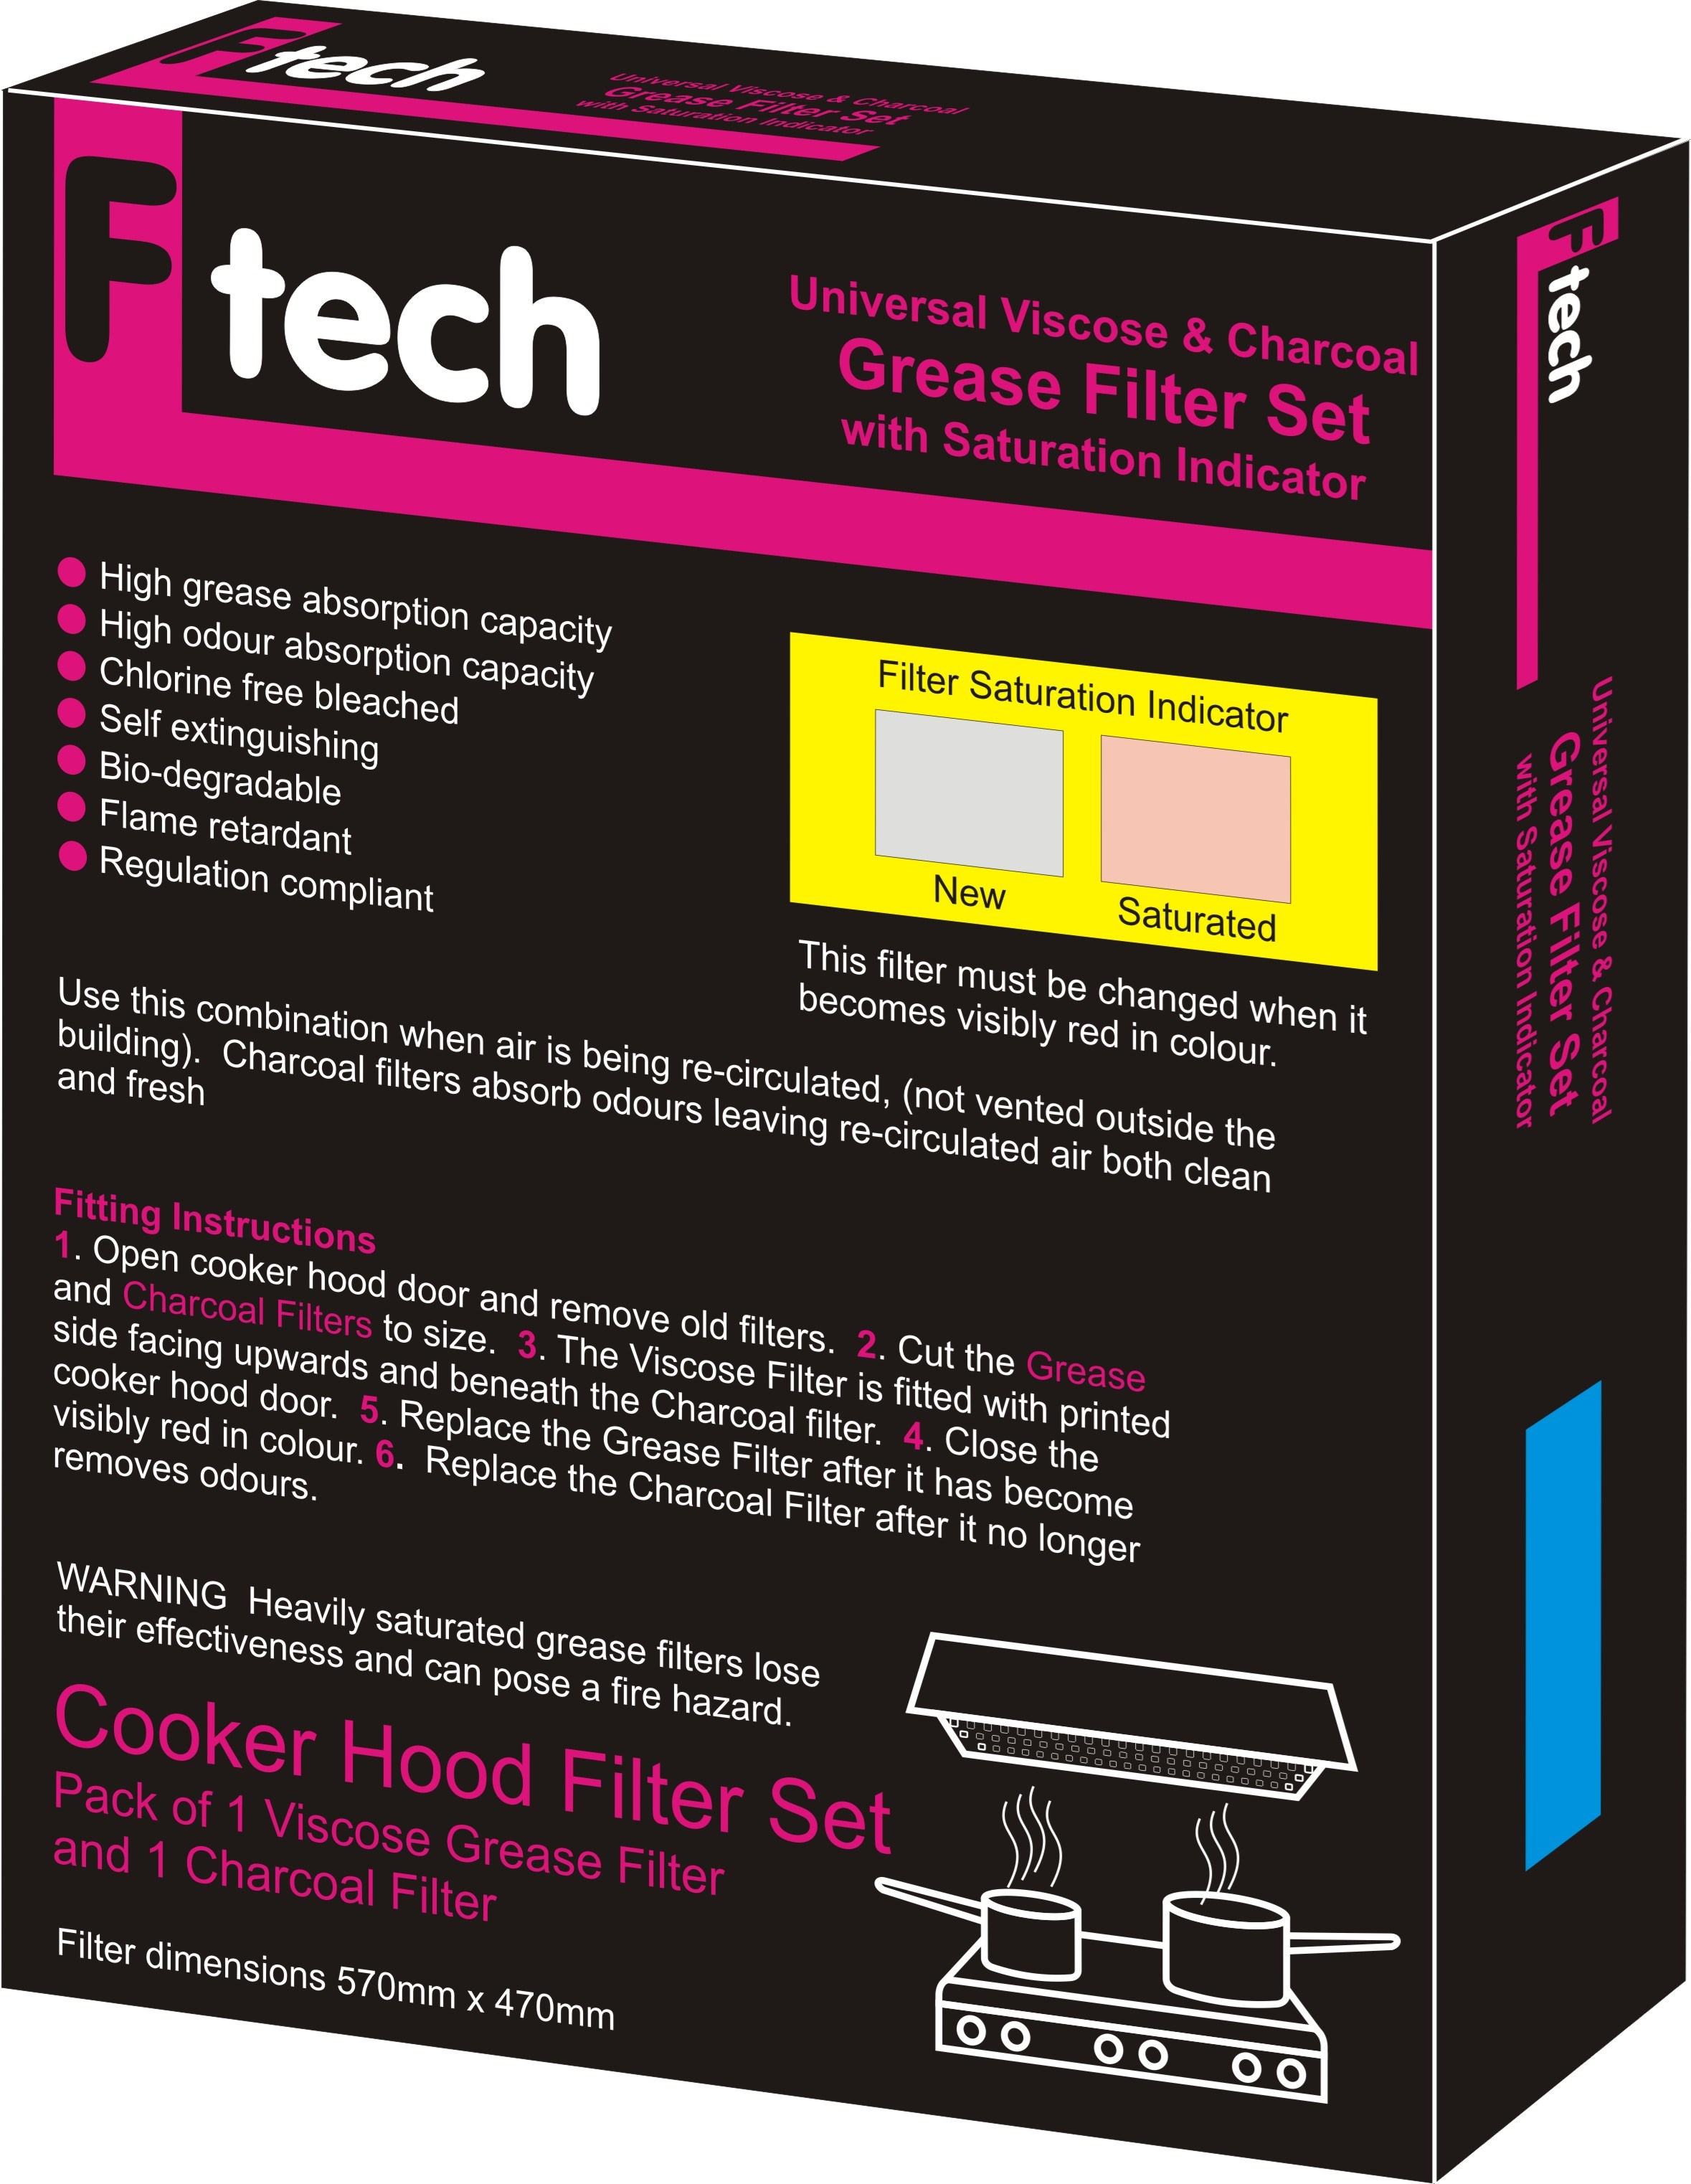 Fiber Tech  Pink Universal Viscose & Charcoal Grease Filter Set